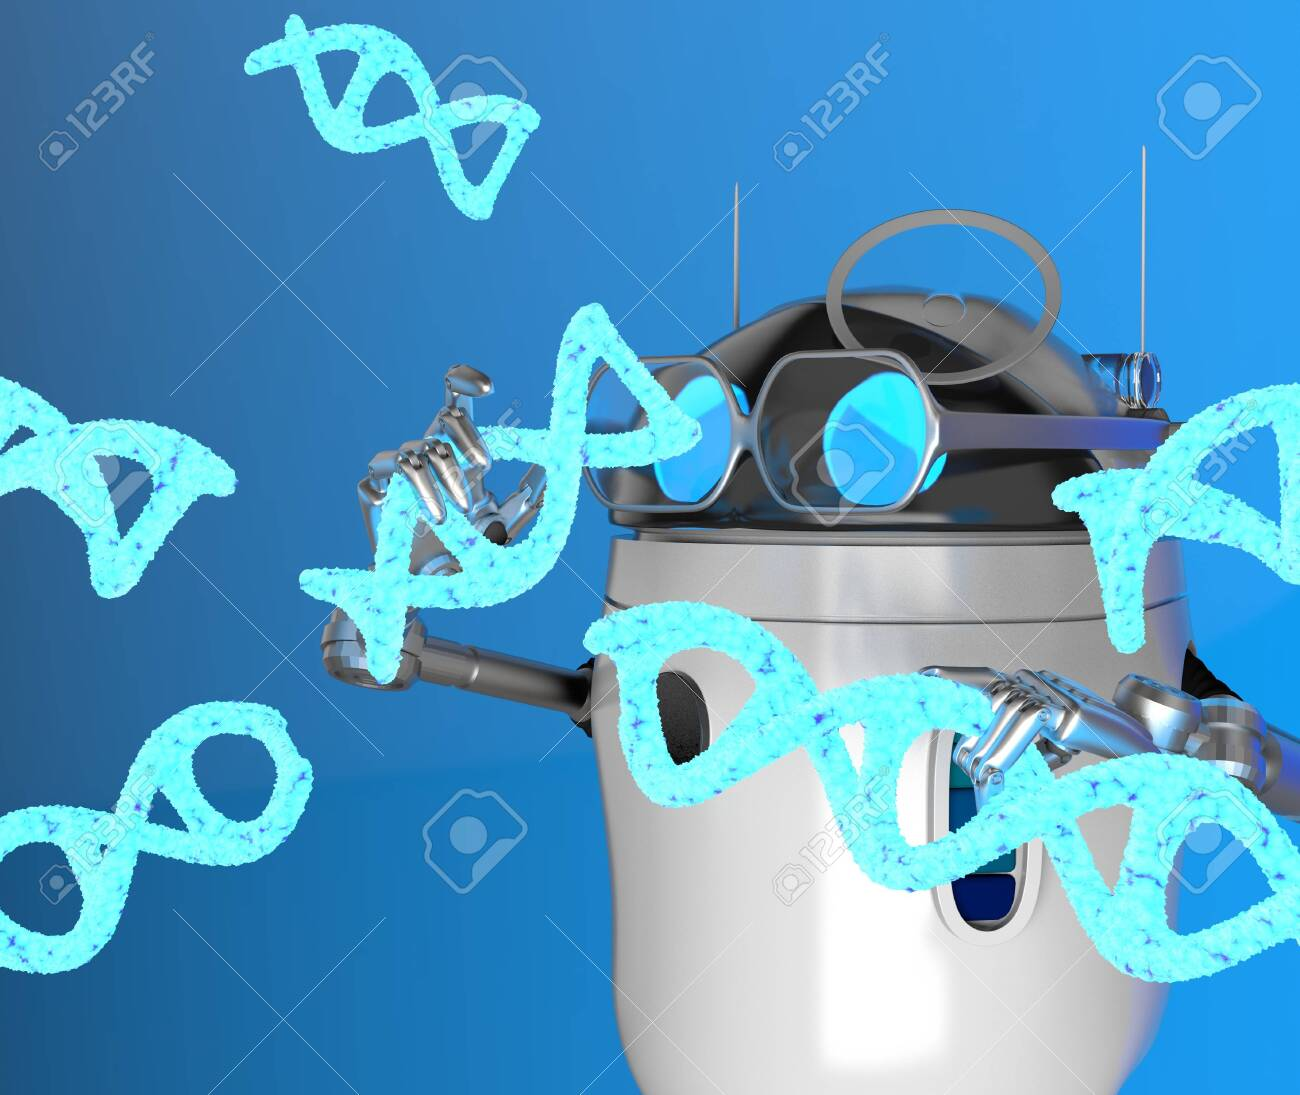 The robot with Blue Dna molecule,text,3d render. - 131122197